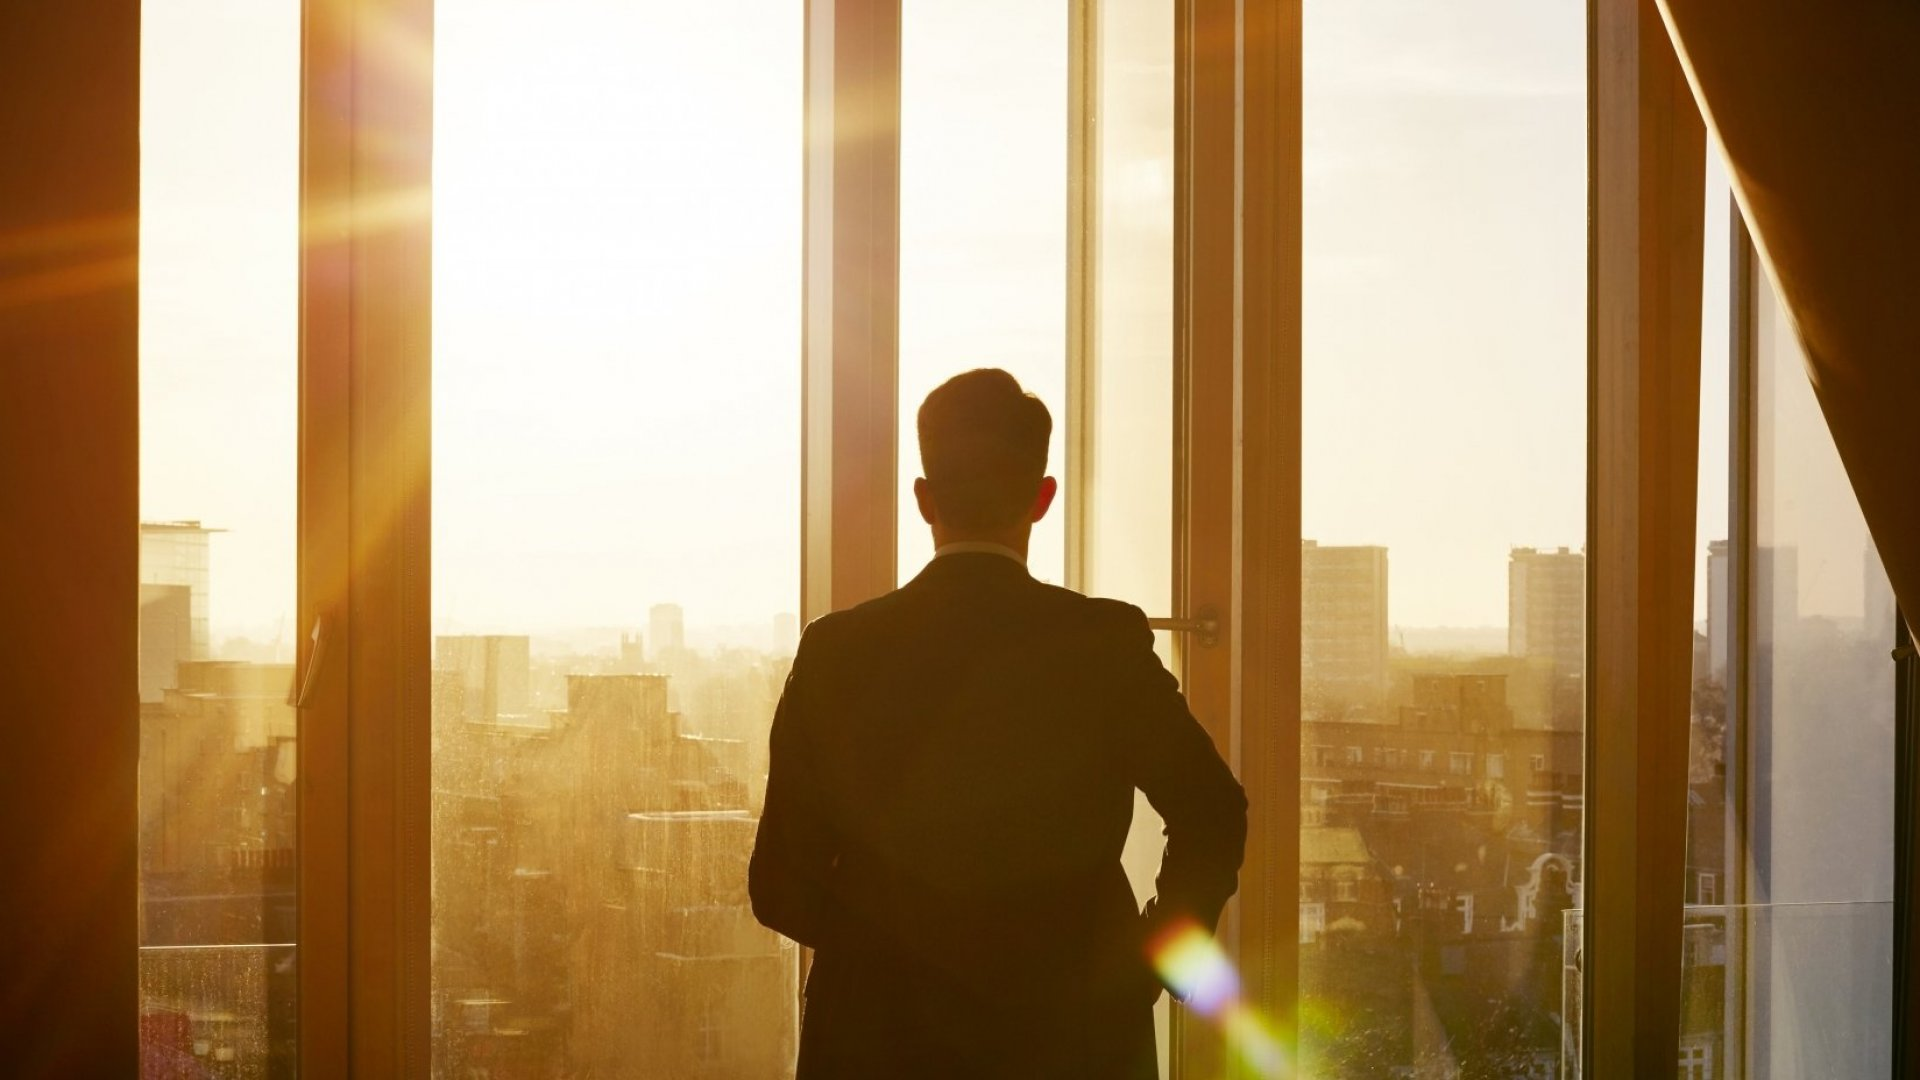 15 Crucial Tips All Leaders Need to Know Now